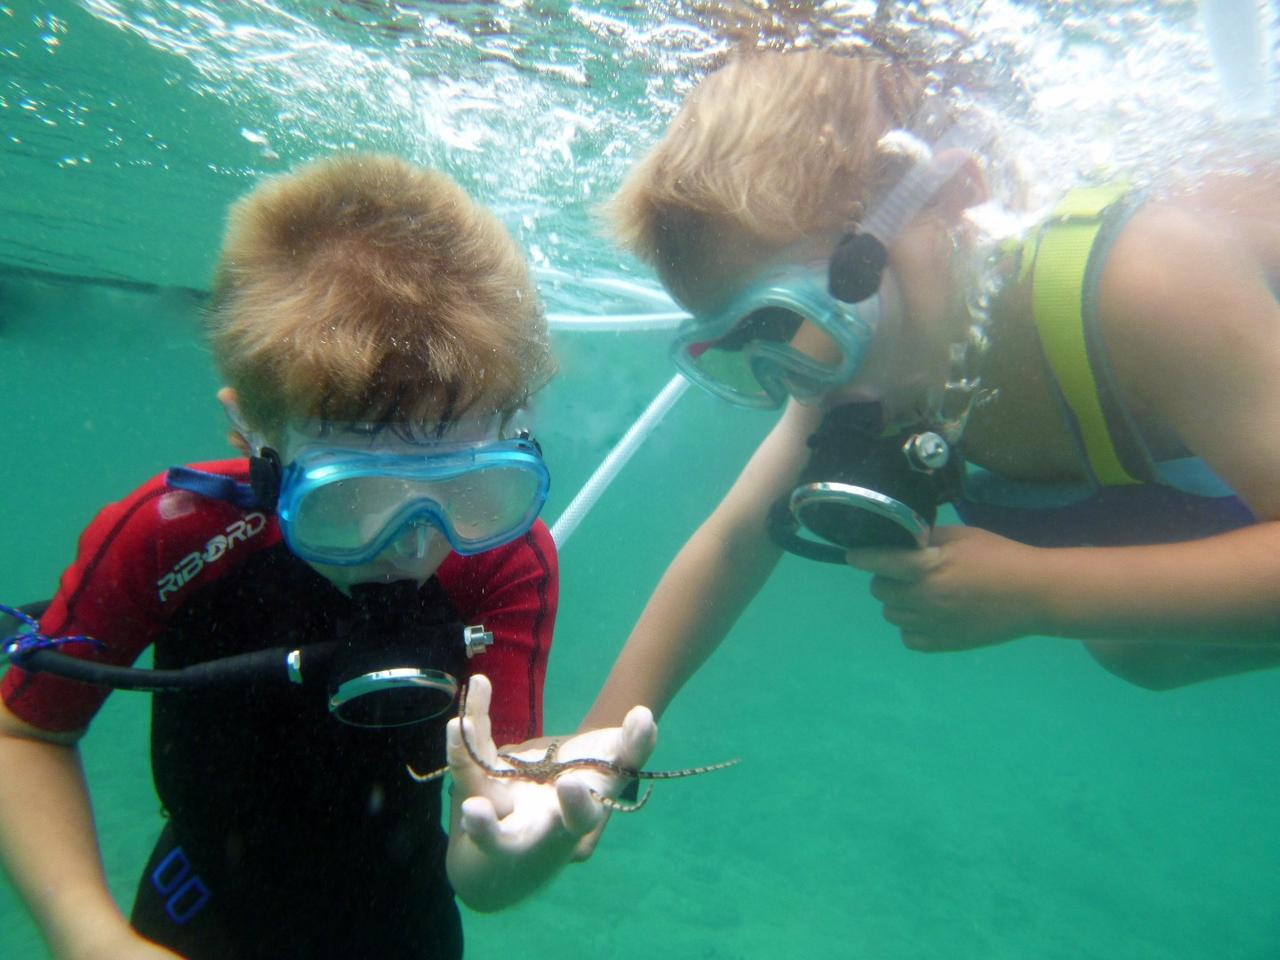 The Snorkel Dive helps get kids comfortable with scuba diving